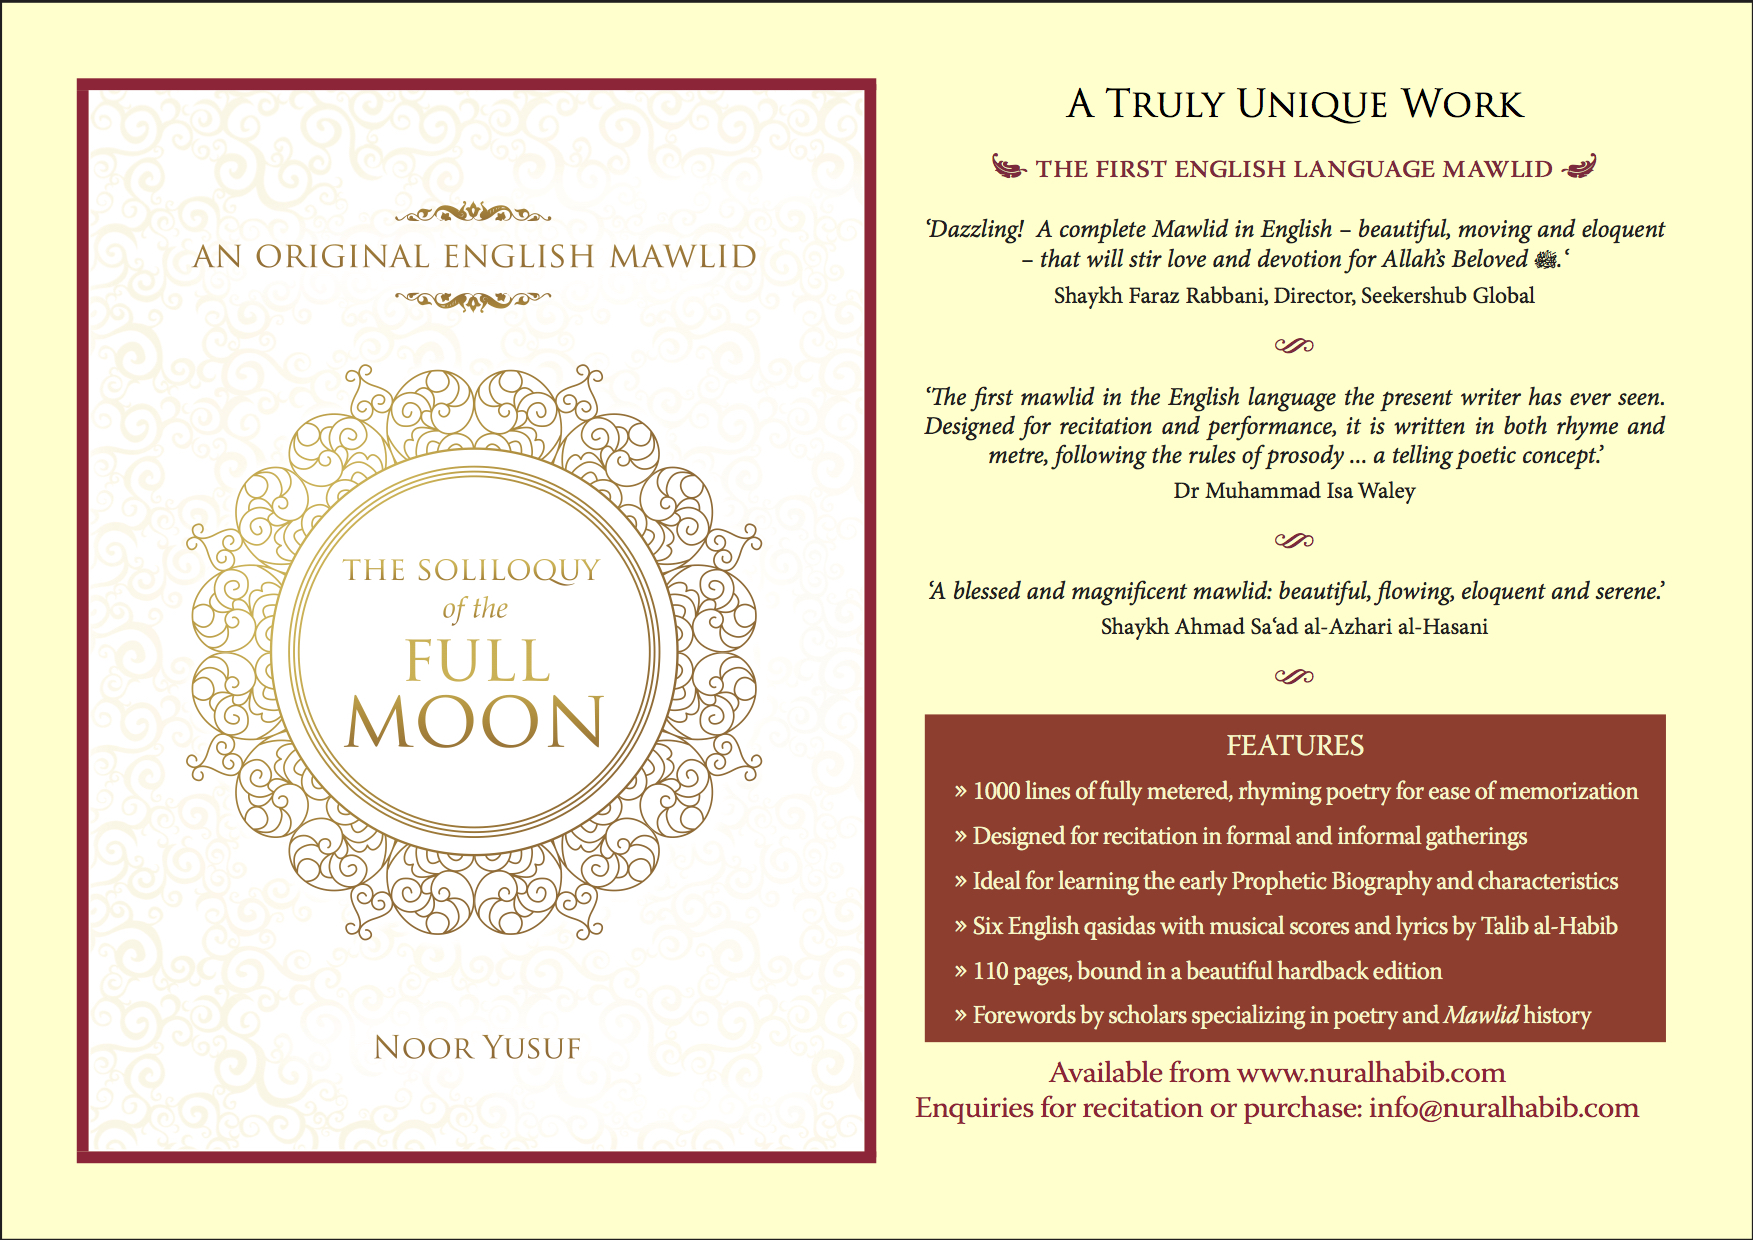 soliloquy-of-the-full-moon